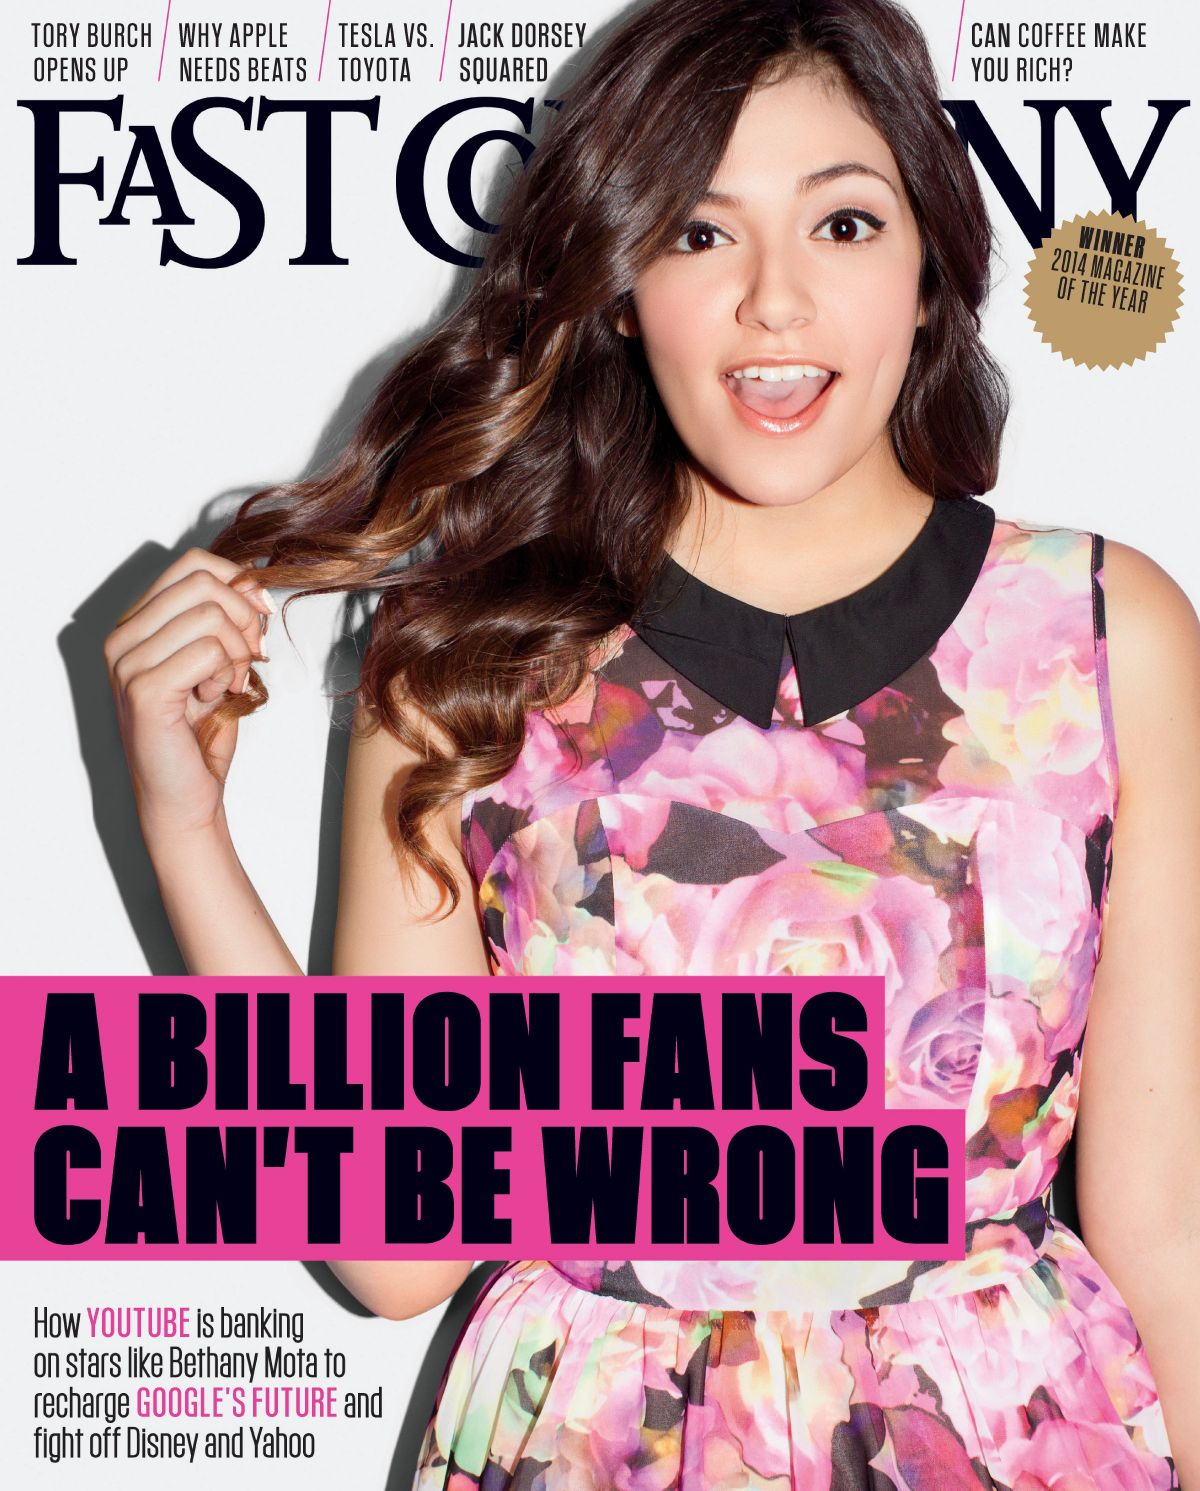 BETHANY MOTA on the Cover of Fast Company Magazine, September 2014 Issue